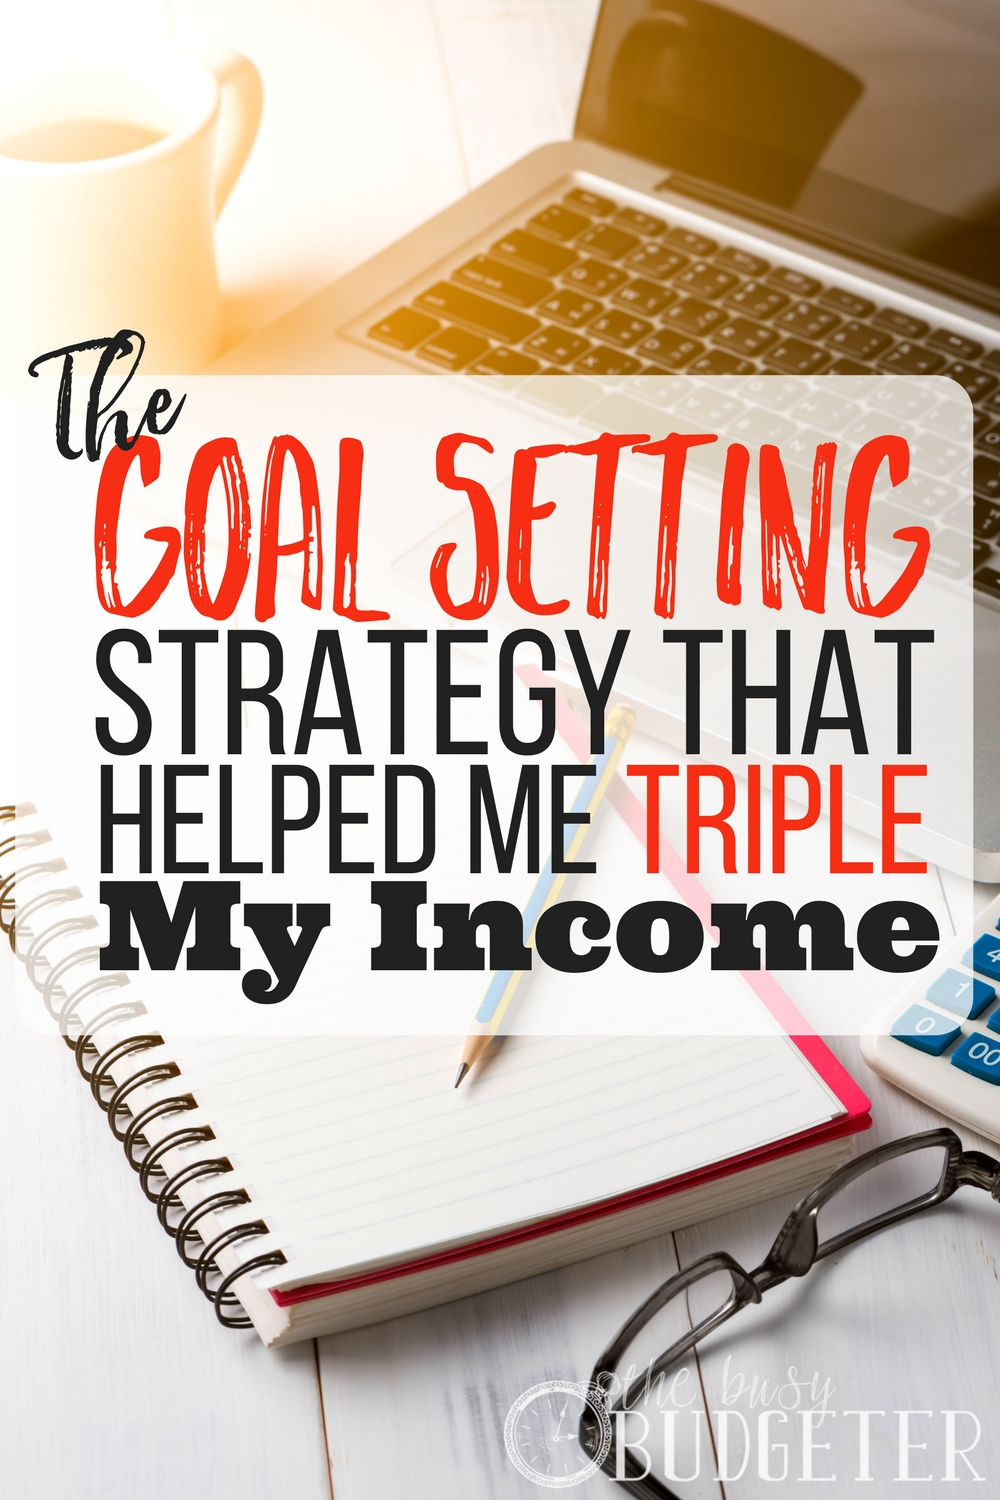 The Simple Goal Setting Strategy That Helped Me Triple My Income. This information is awesome! I have been struggling for so long to make my side job a full time gig and I realized today that what I really need is an action plan. These steps made it it easy!